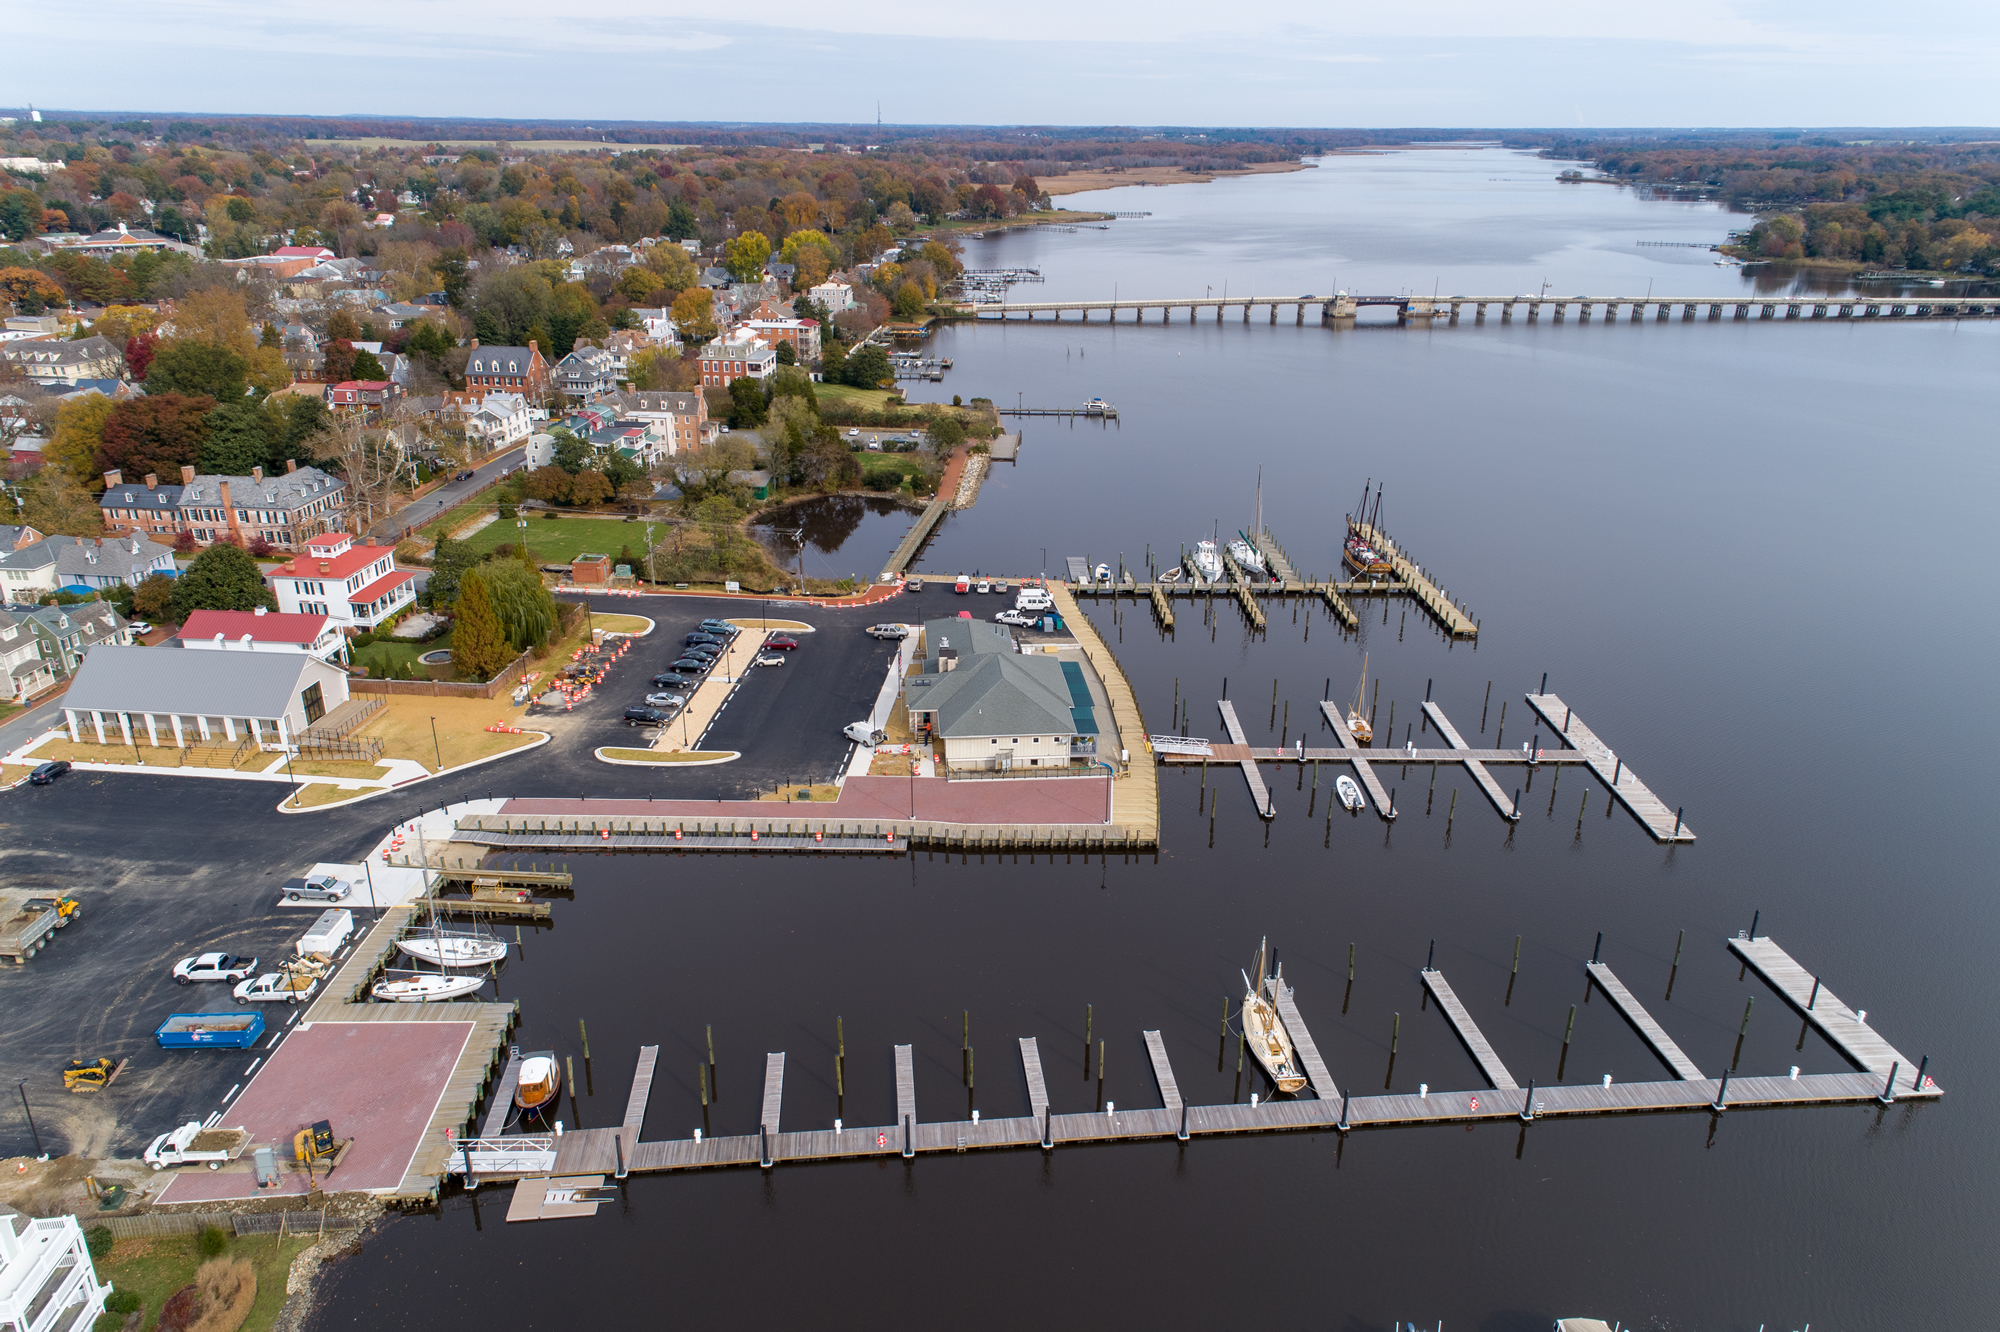 The Port of Chestertown Marina – located in Historic Chestertown